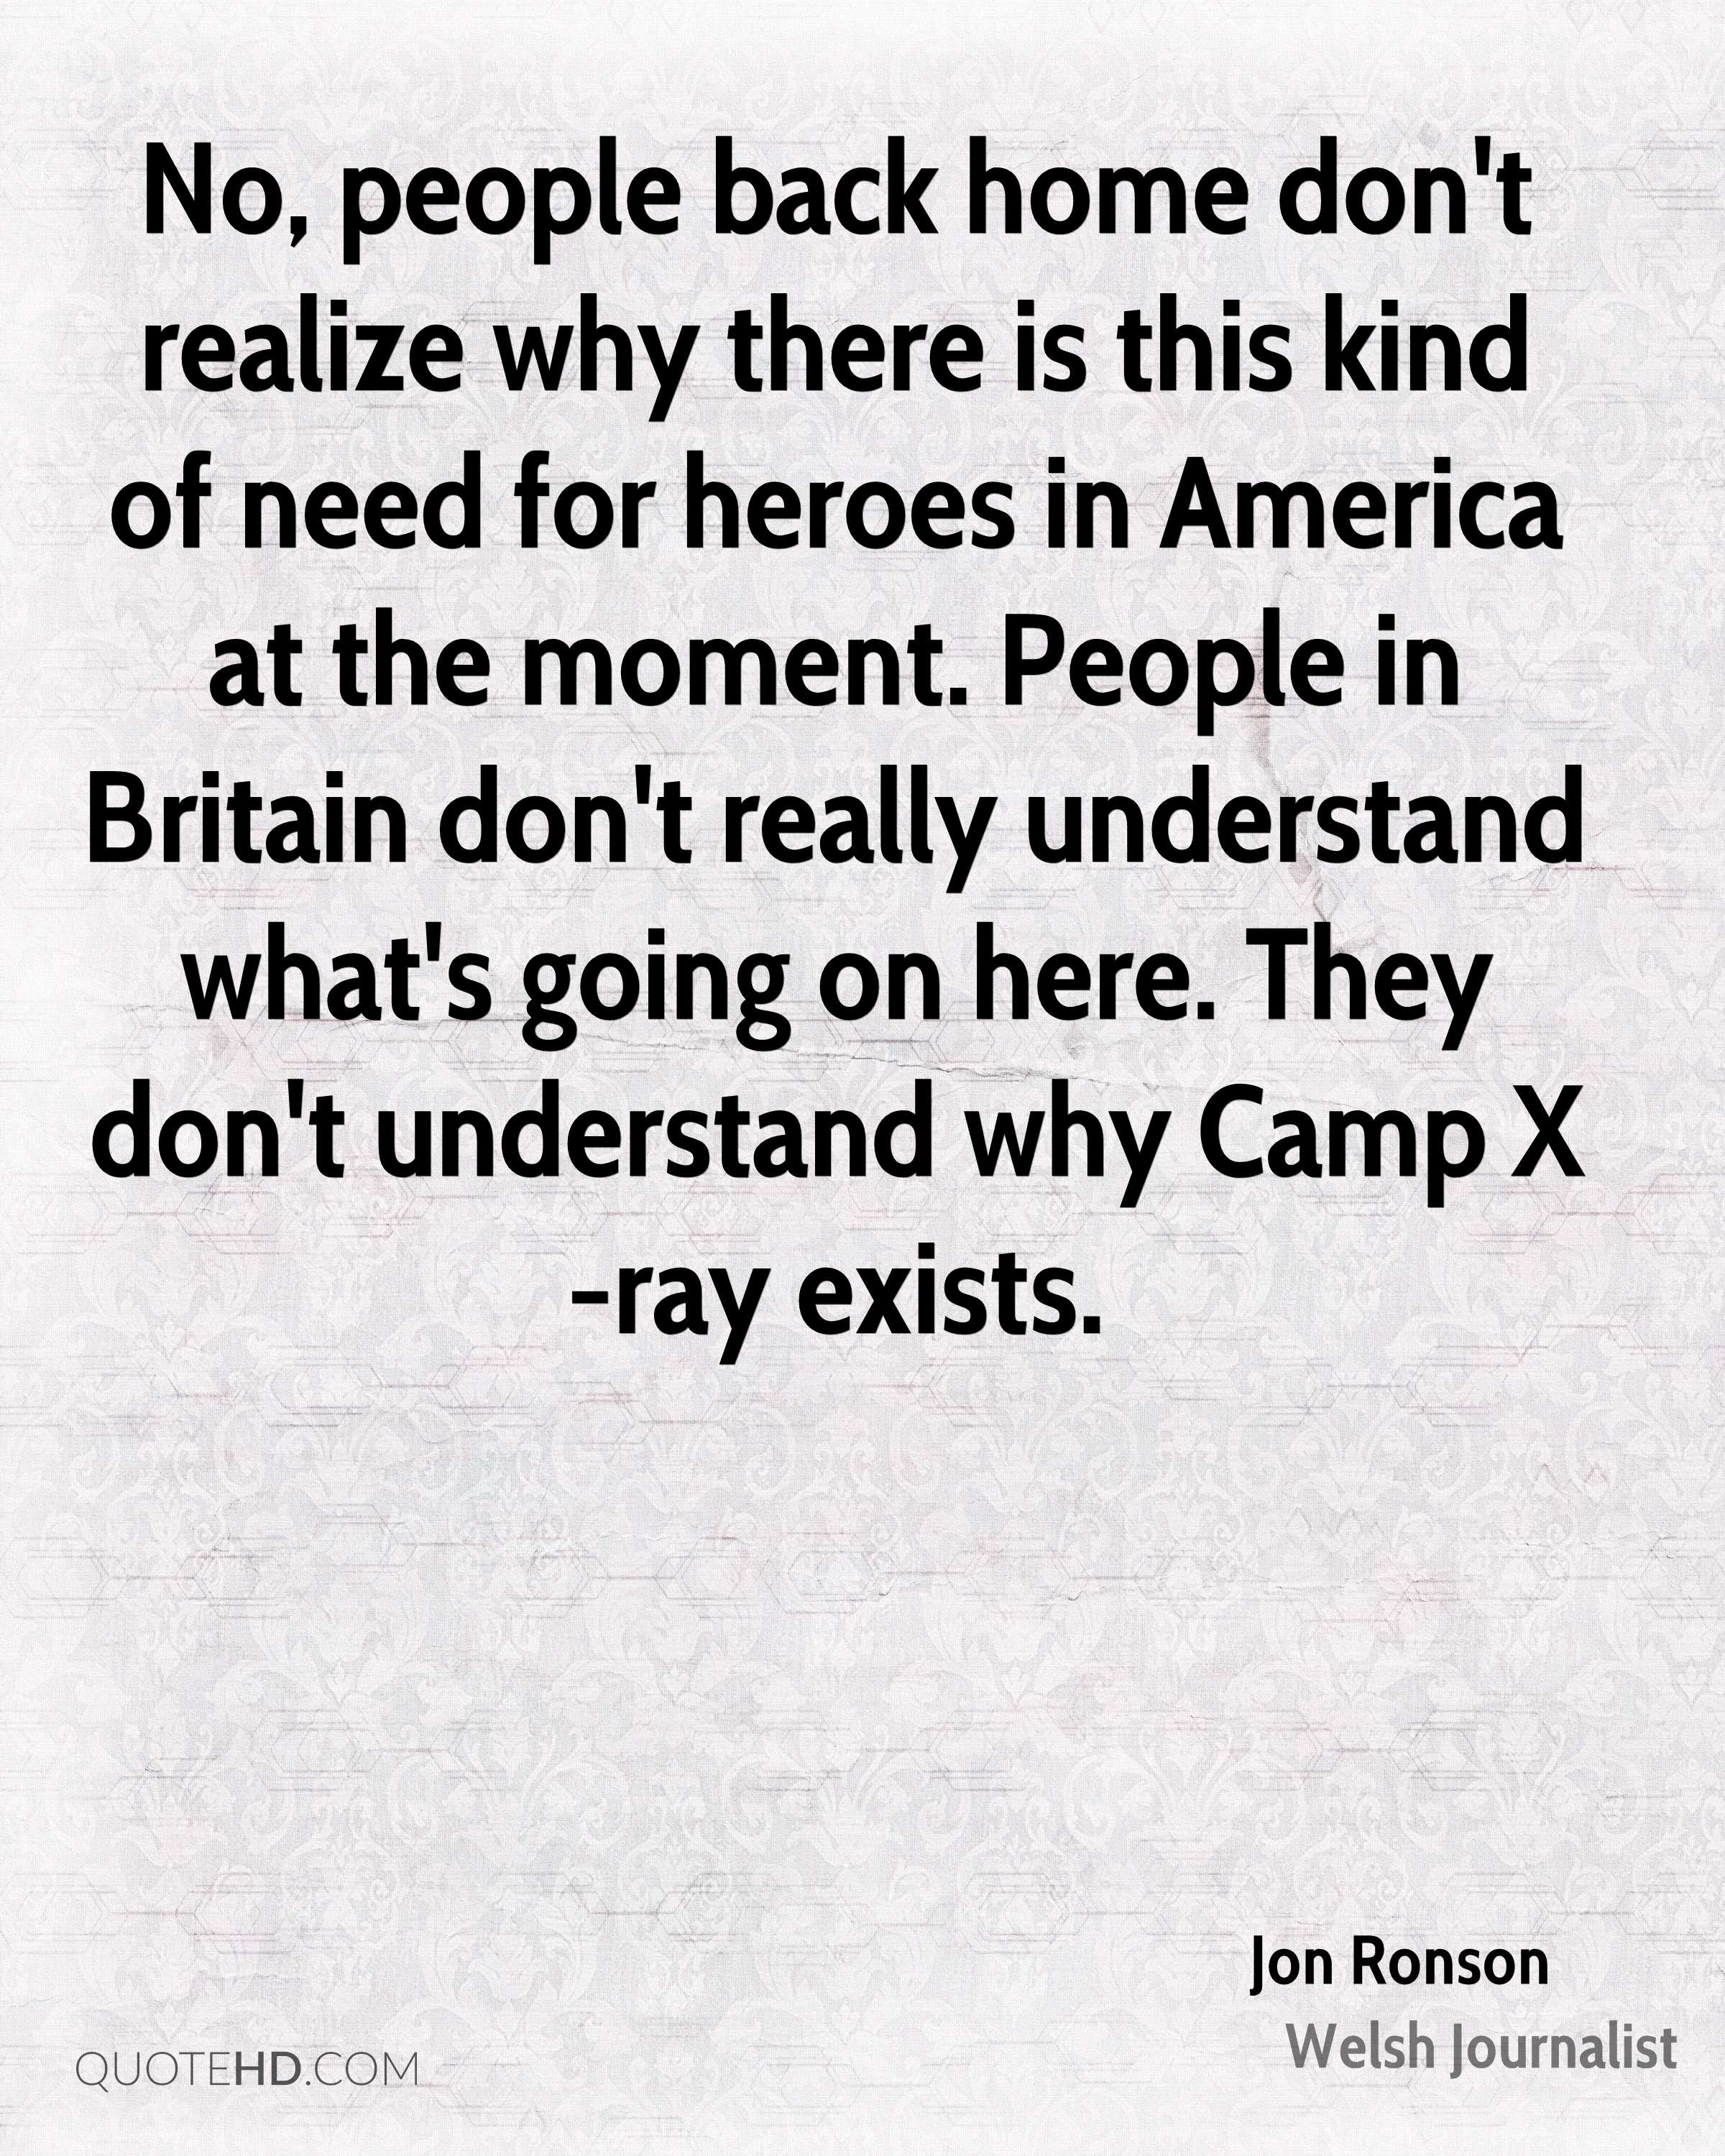 No, people back home don't realize why there is this kind of need for heroes in America at the moment. People in Britain don't really understand what's going on here. They don't understand why Camp X-ray exists.